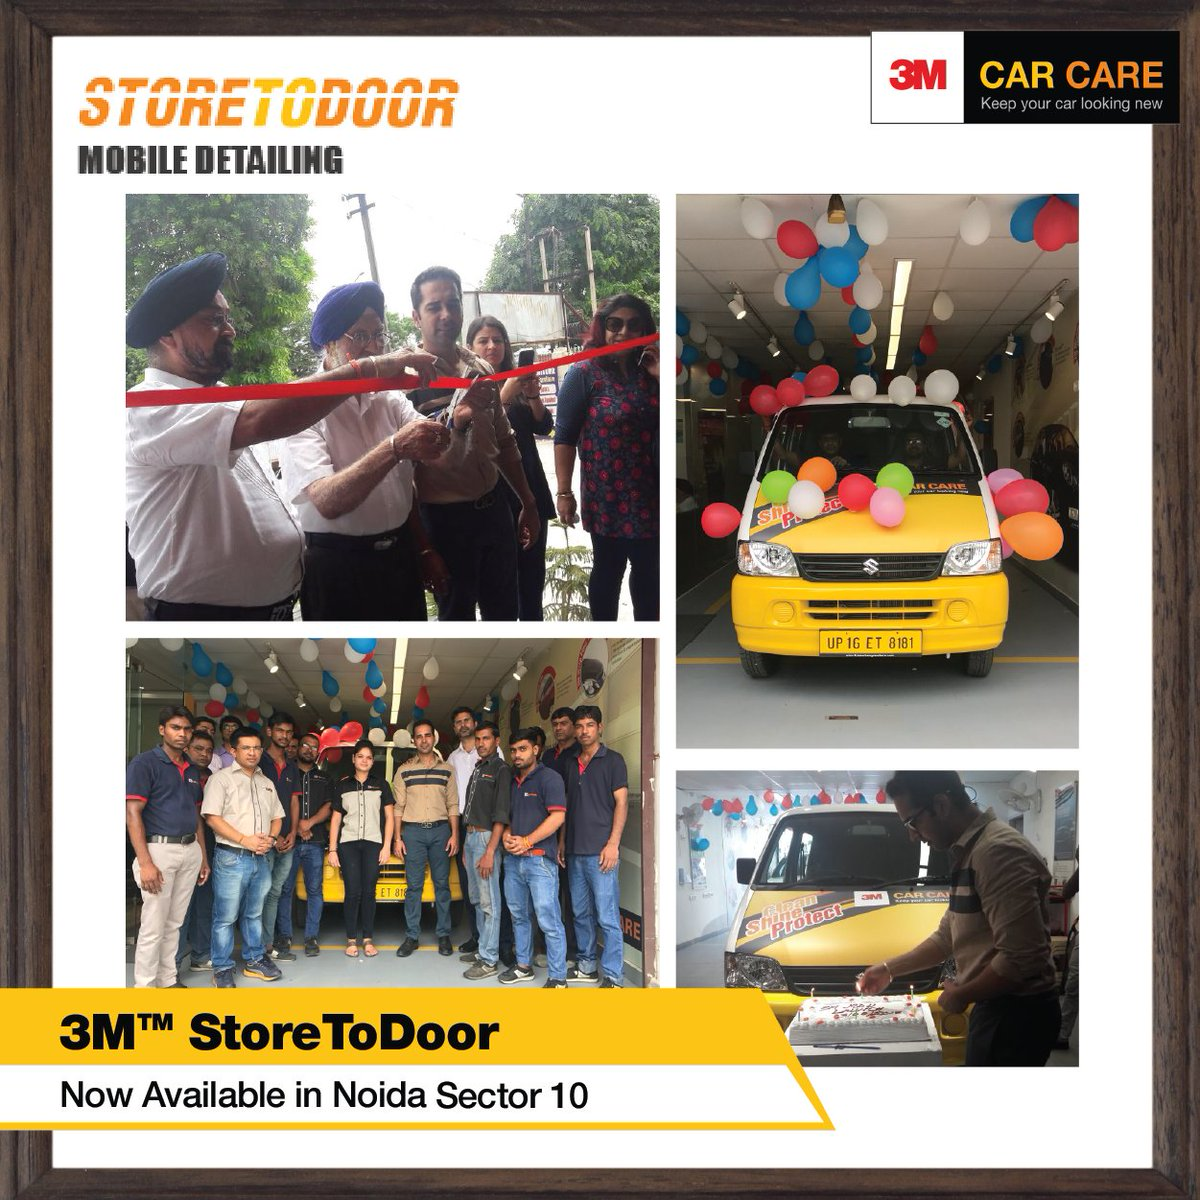 3M Car Care India on Twitter: